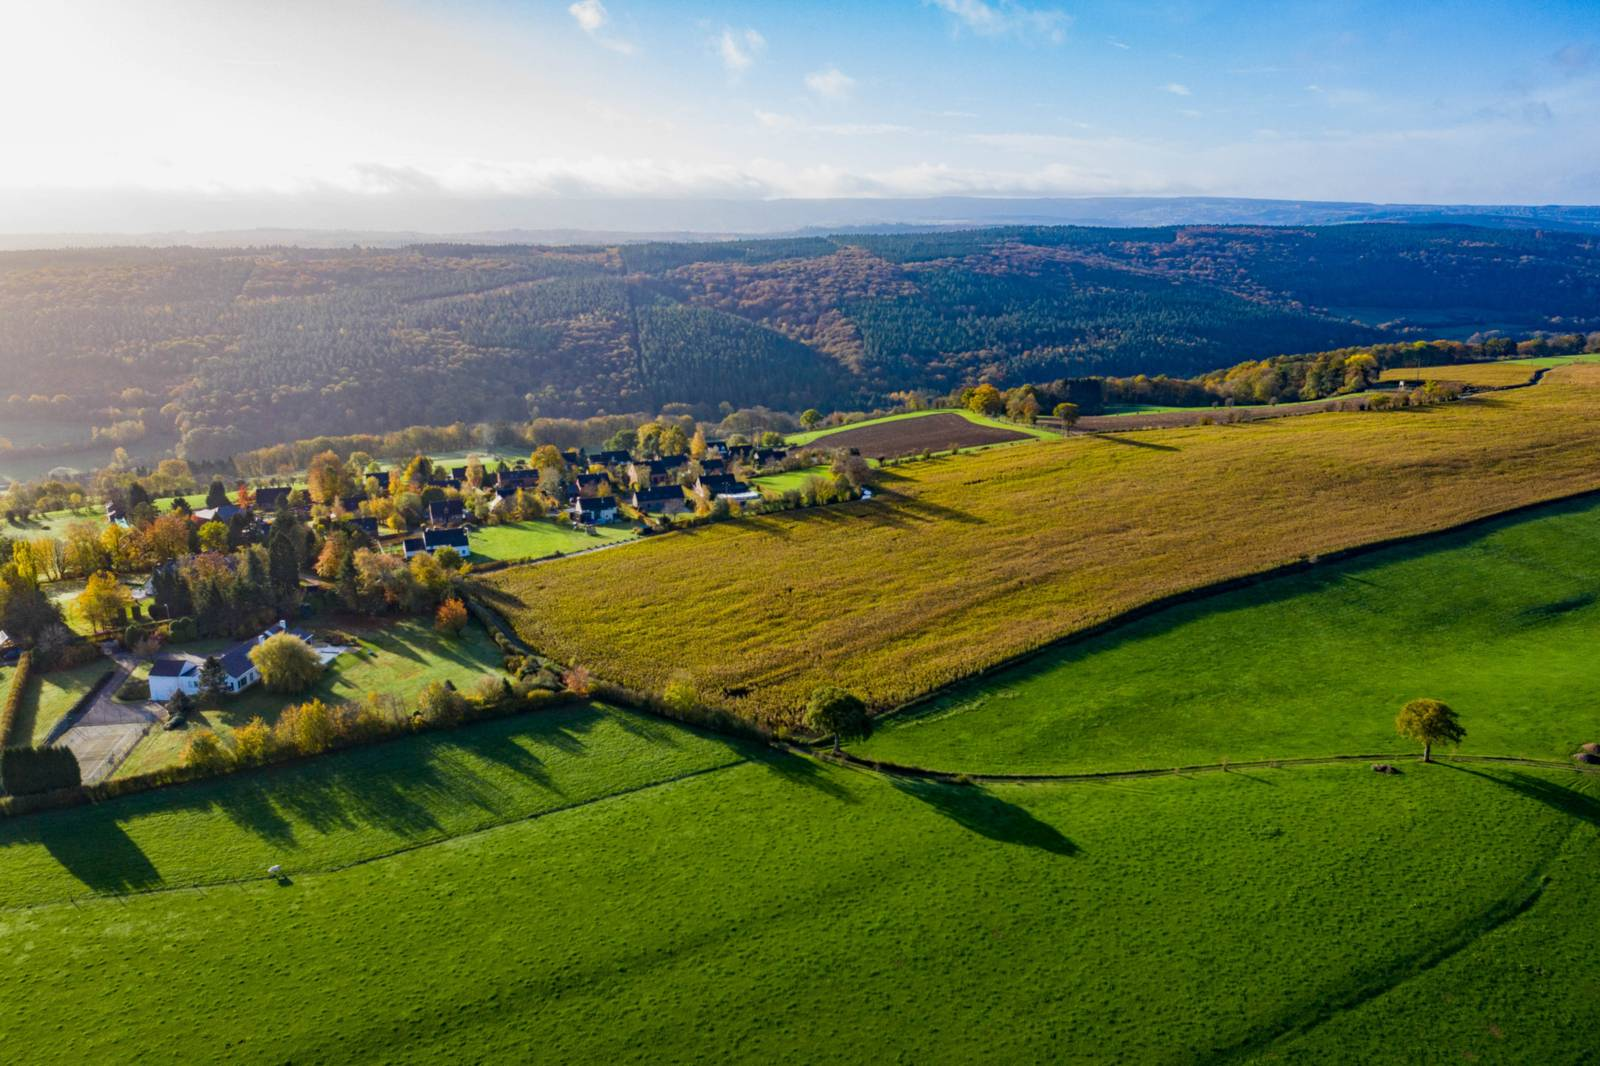 Aerial view of the countryside near Theux, Belgium